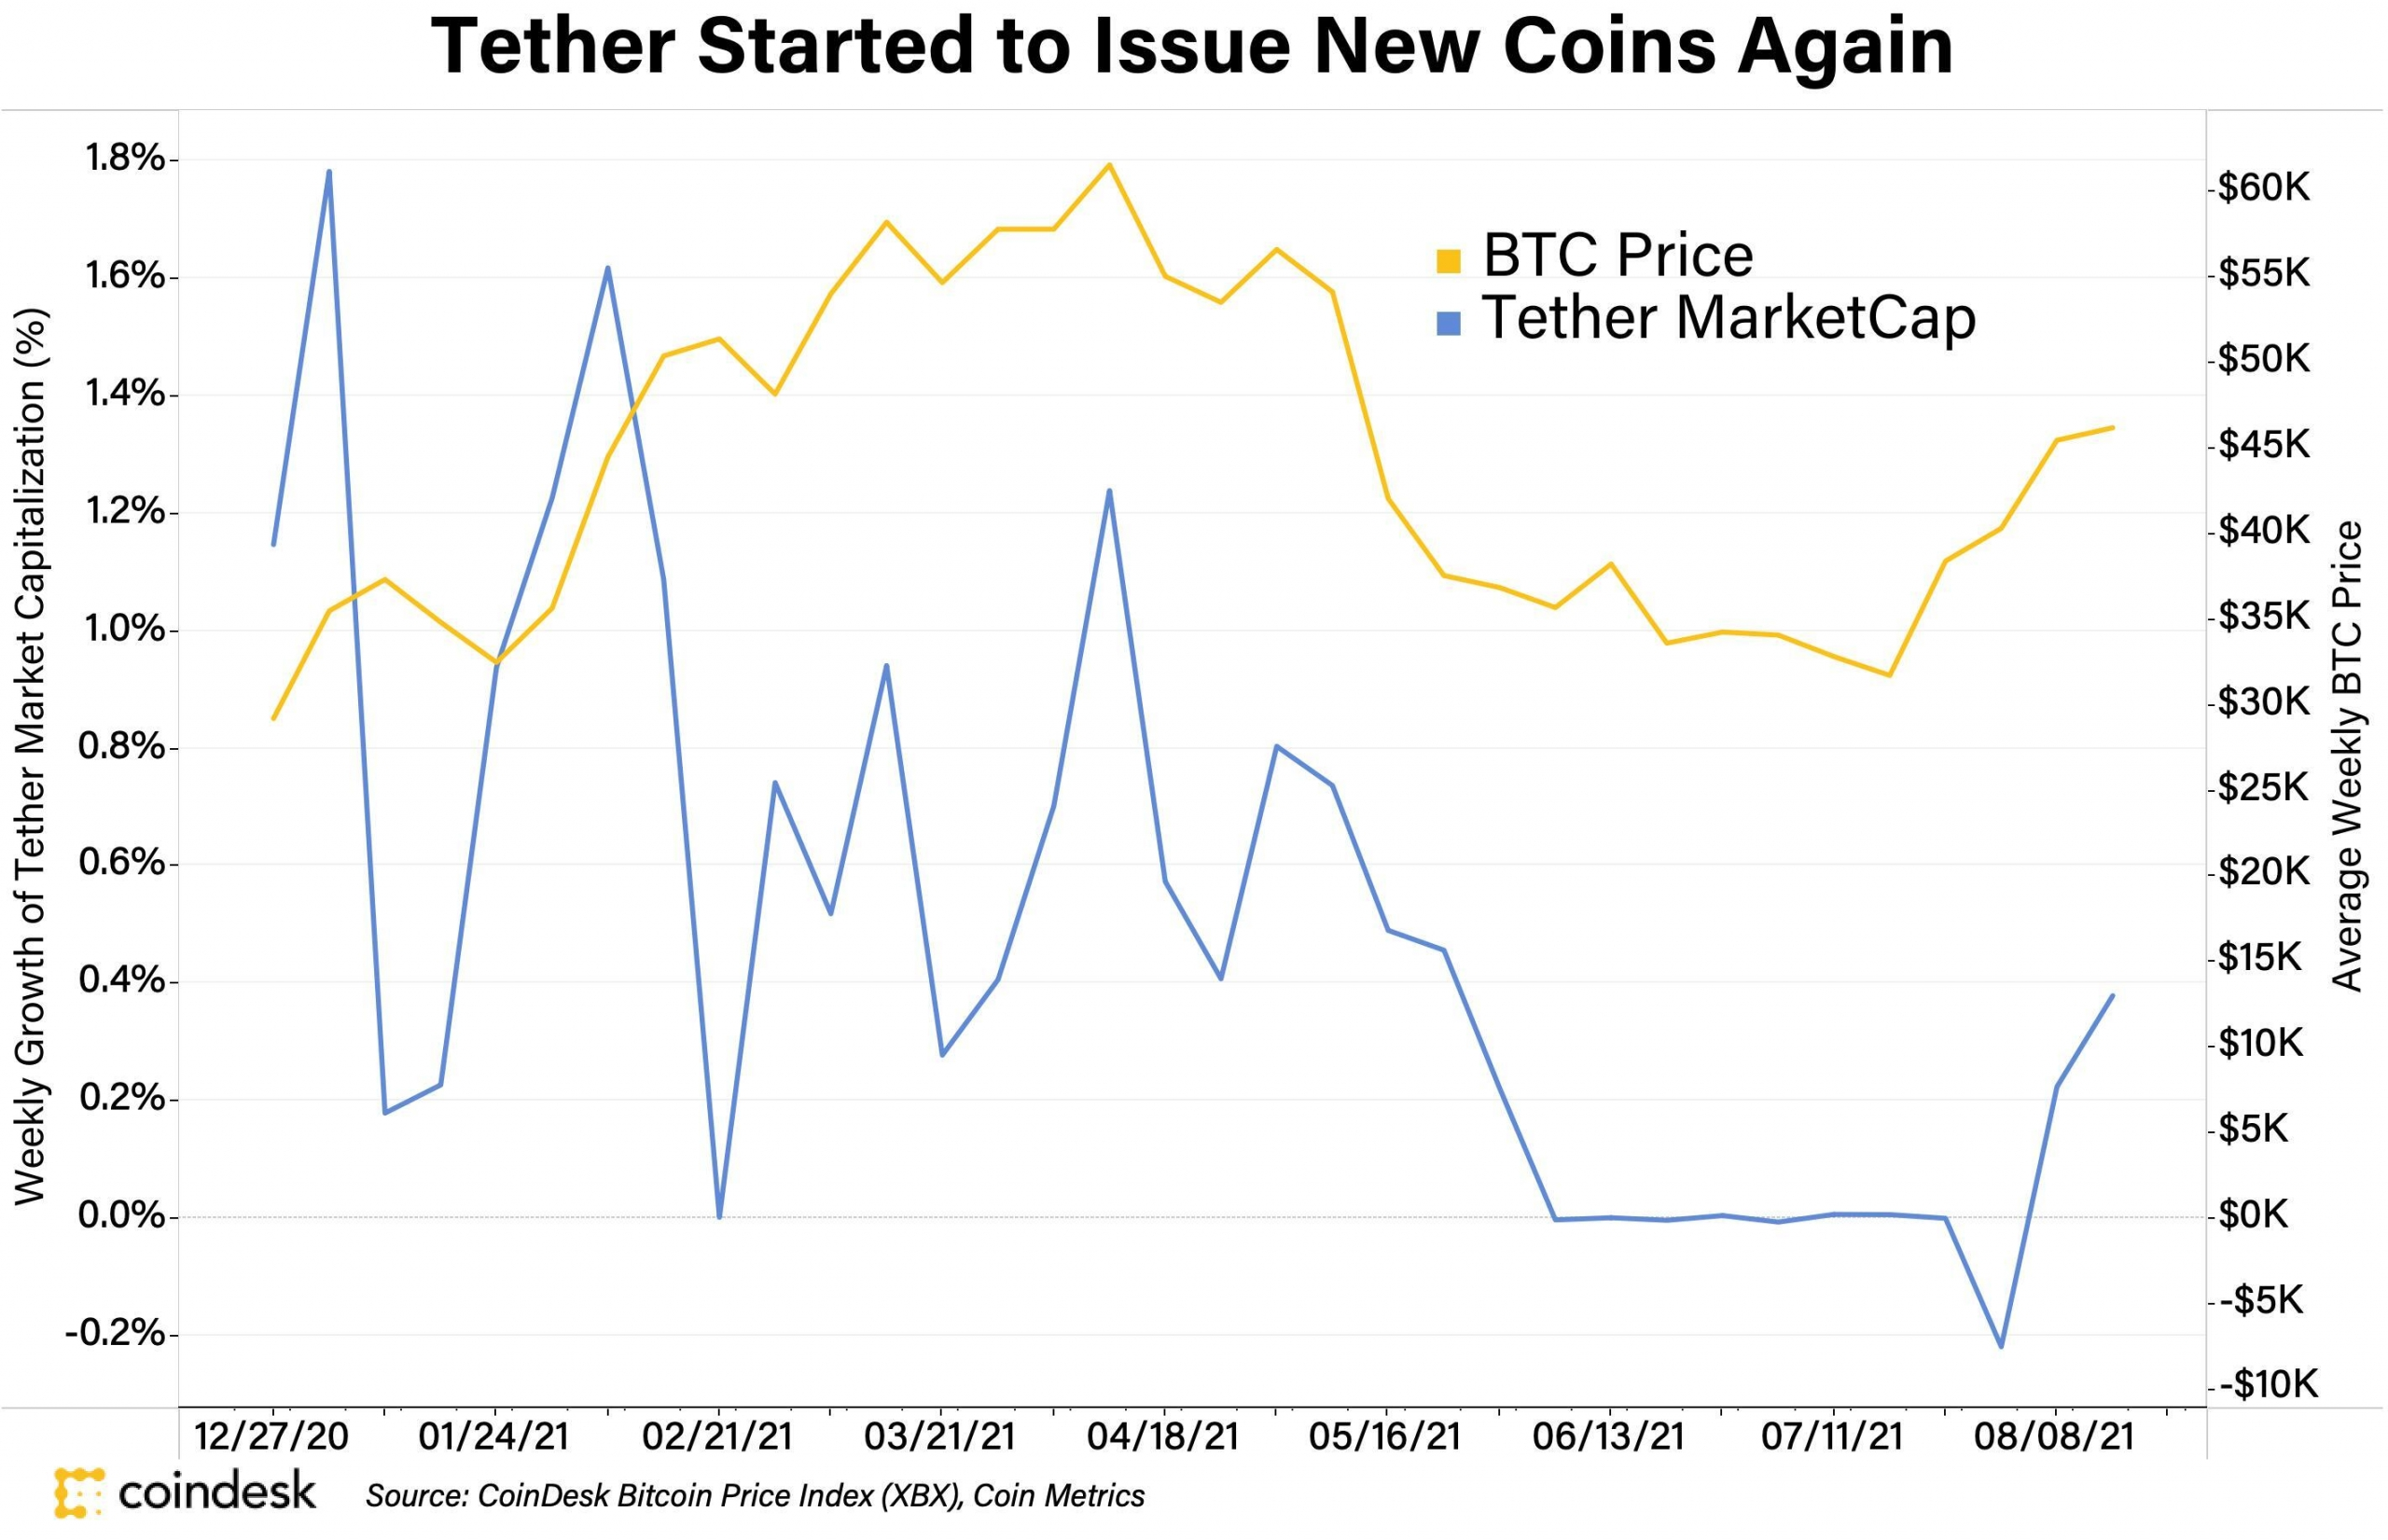 Tether Starts Printing Again After 2-Month Pause